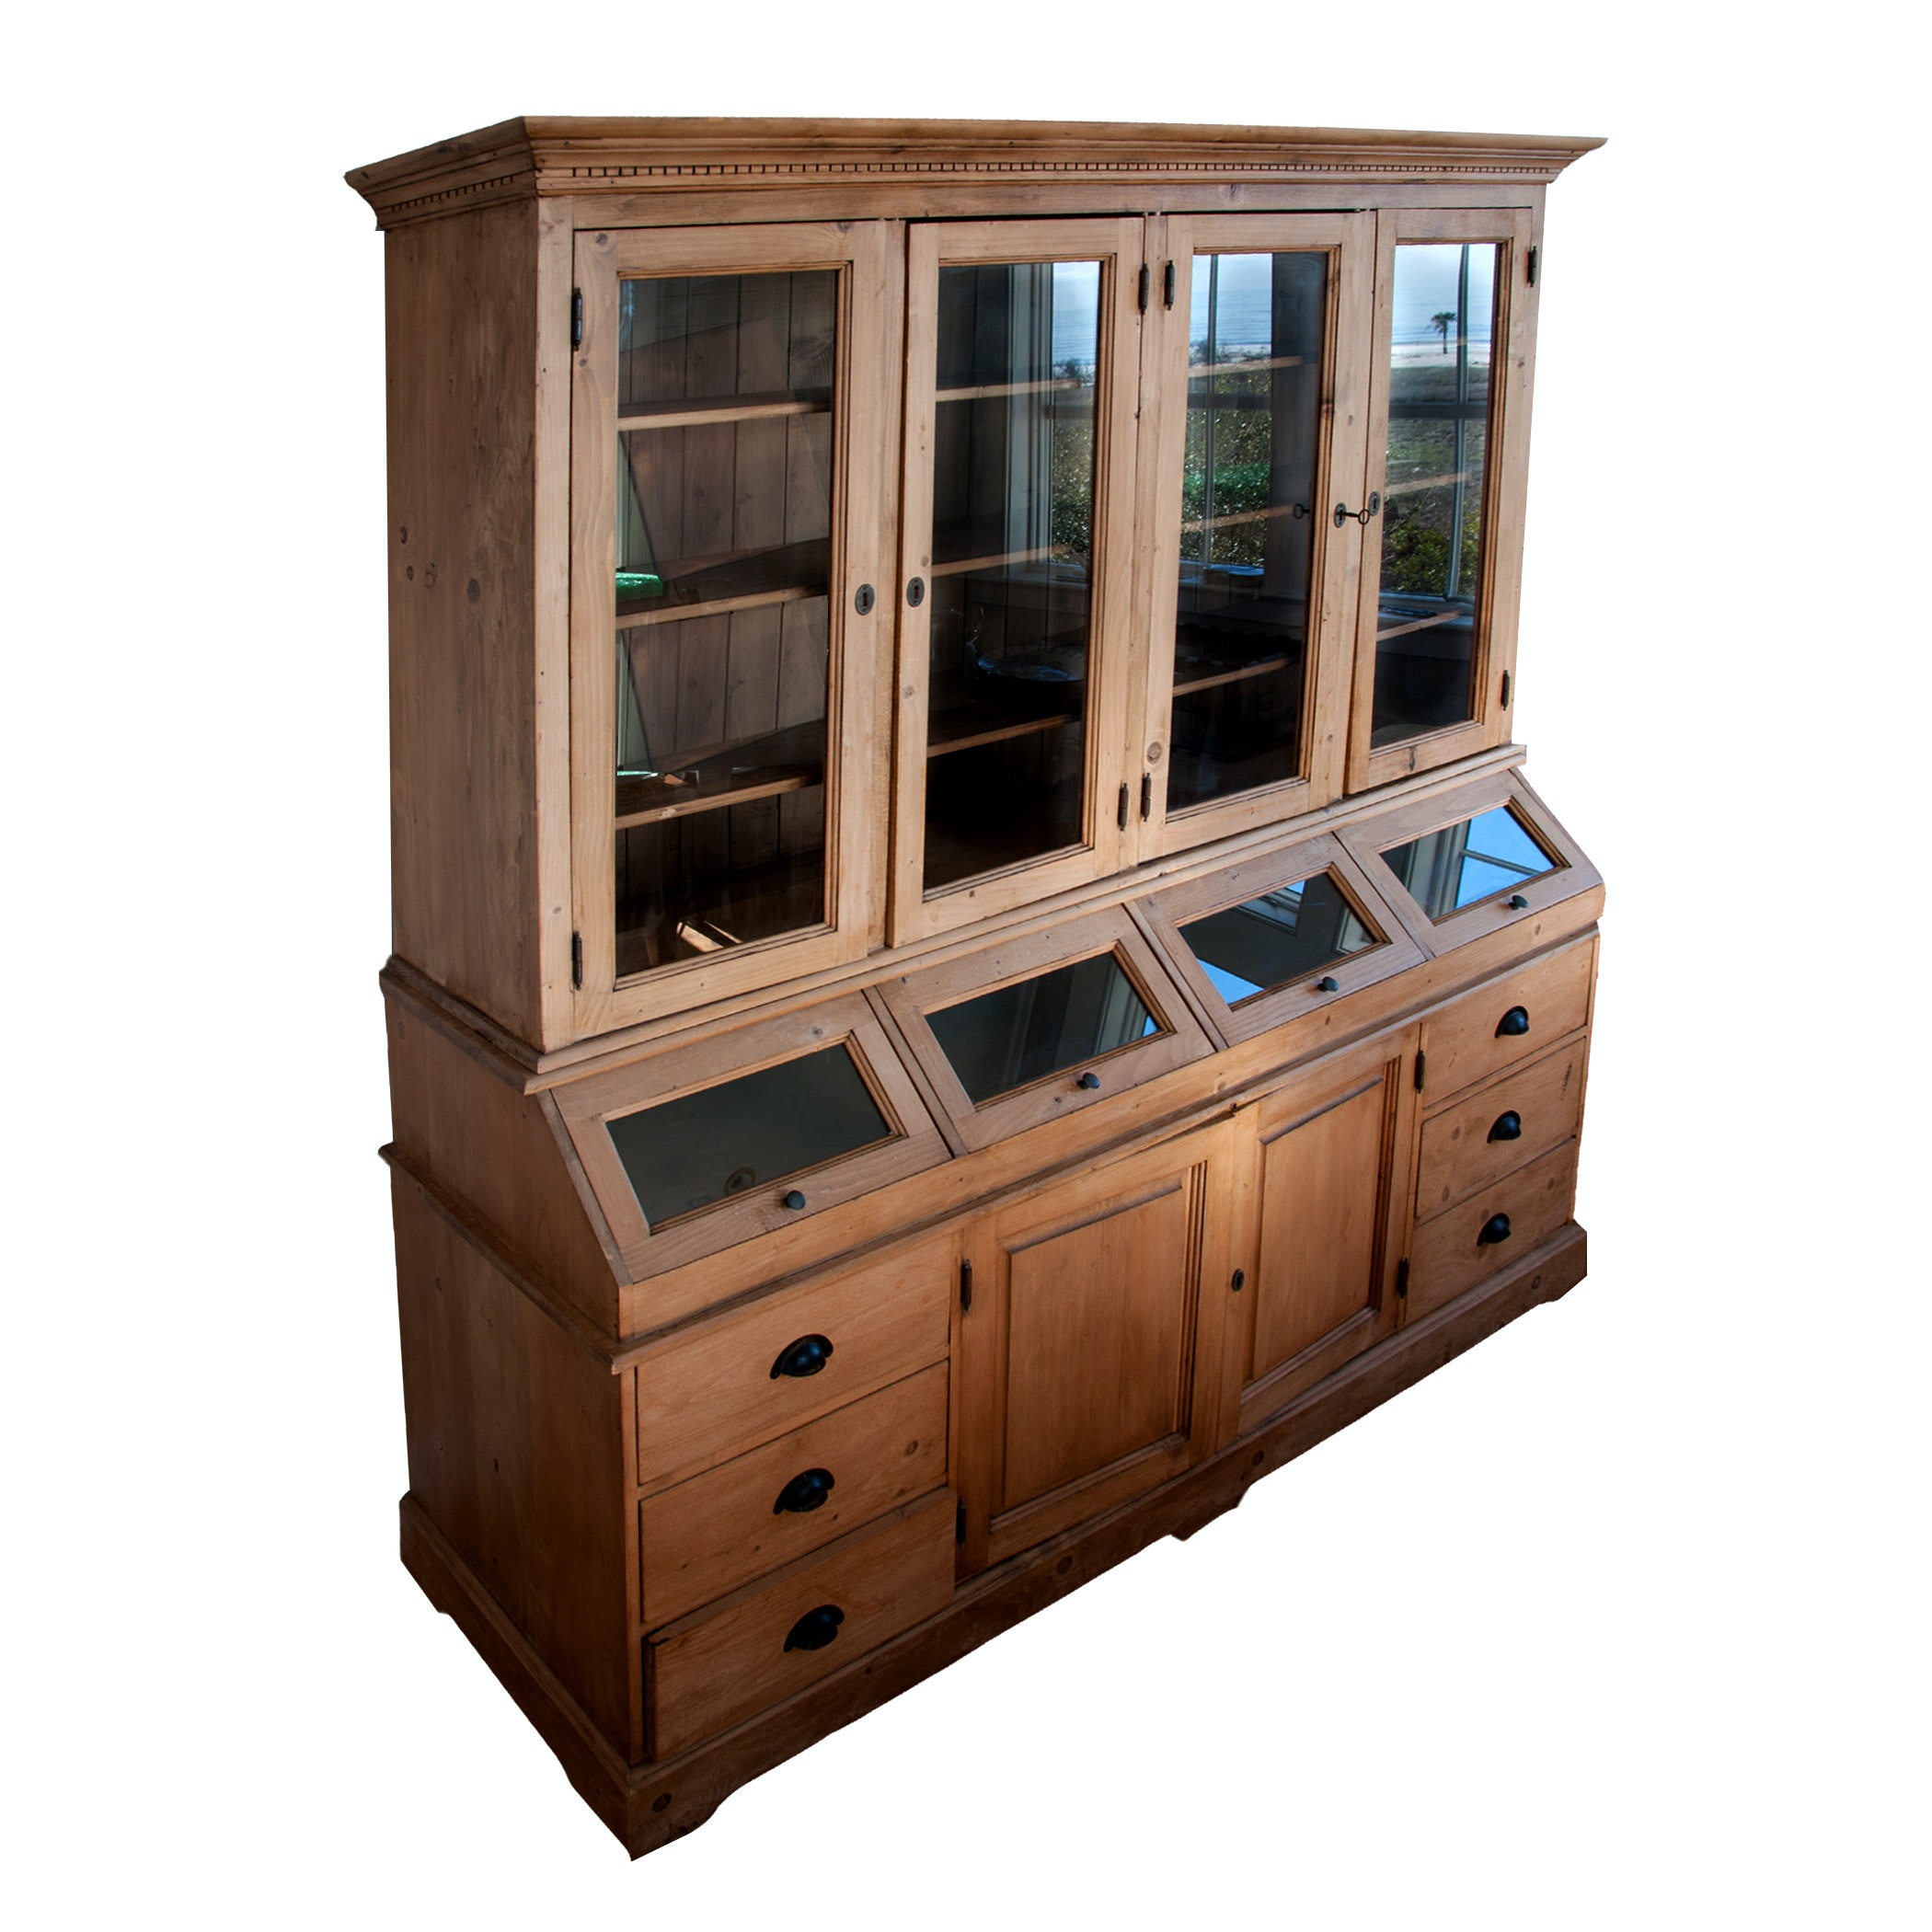 Wooden Display and Storage Hutch